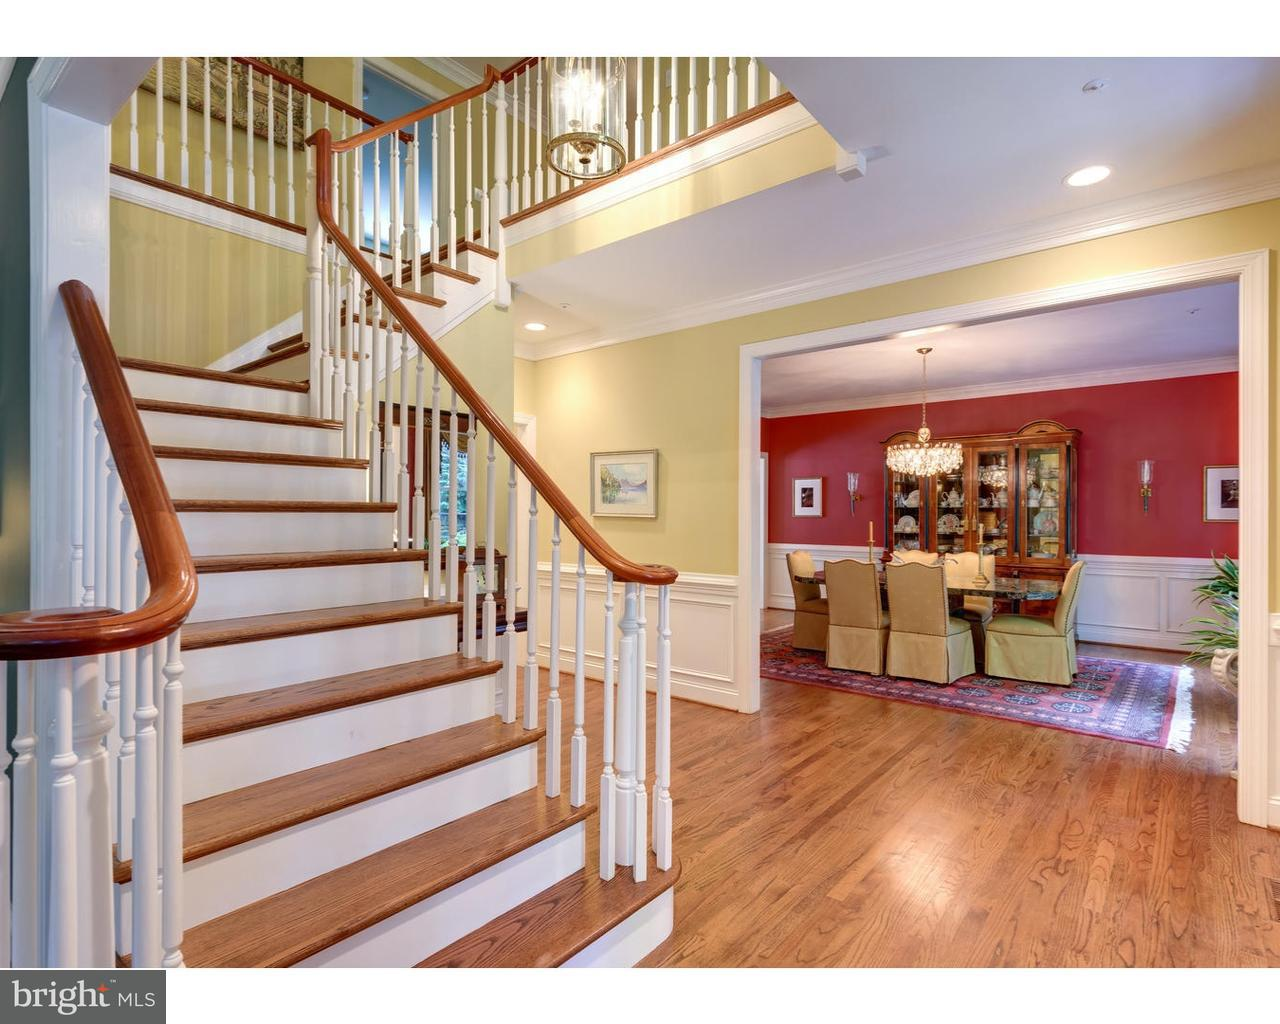 1210 WINDERLY LN, NEWTOWN SQUARE - Listed at $1,100,000, NEWTOWN SQUARE